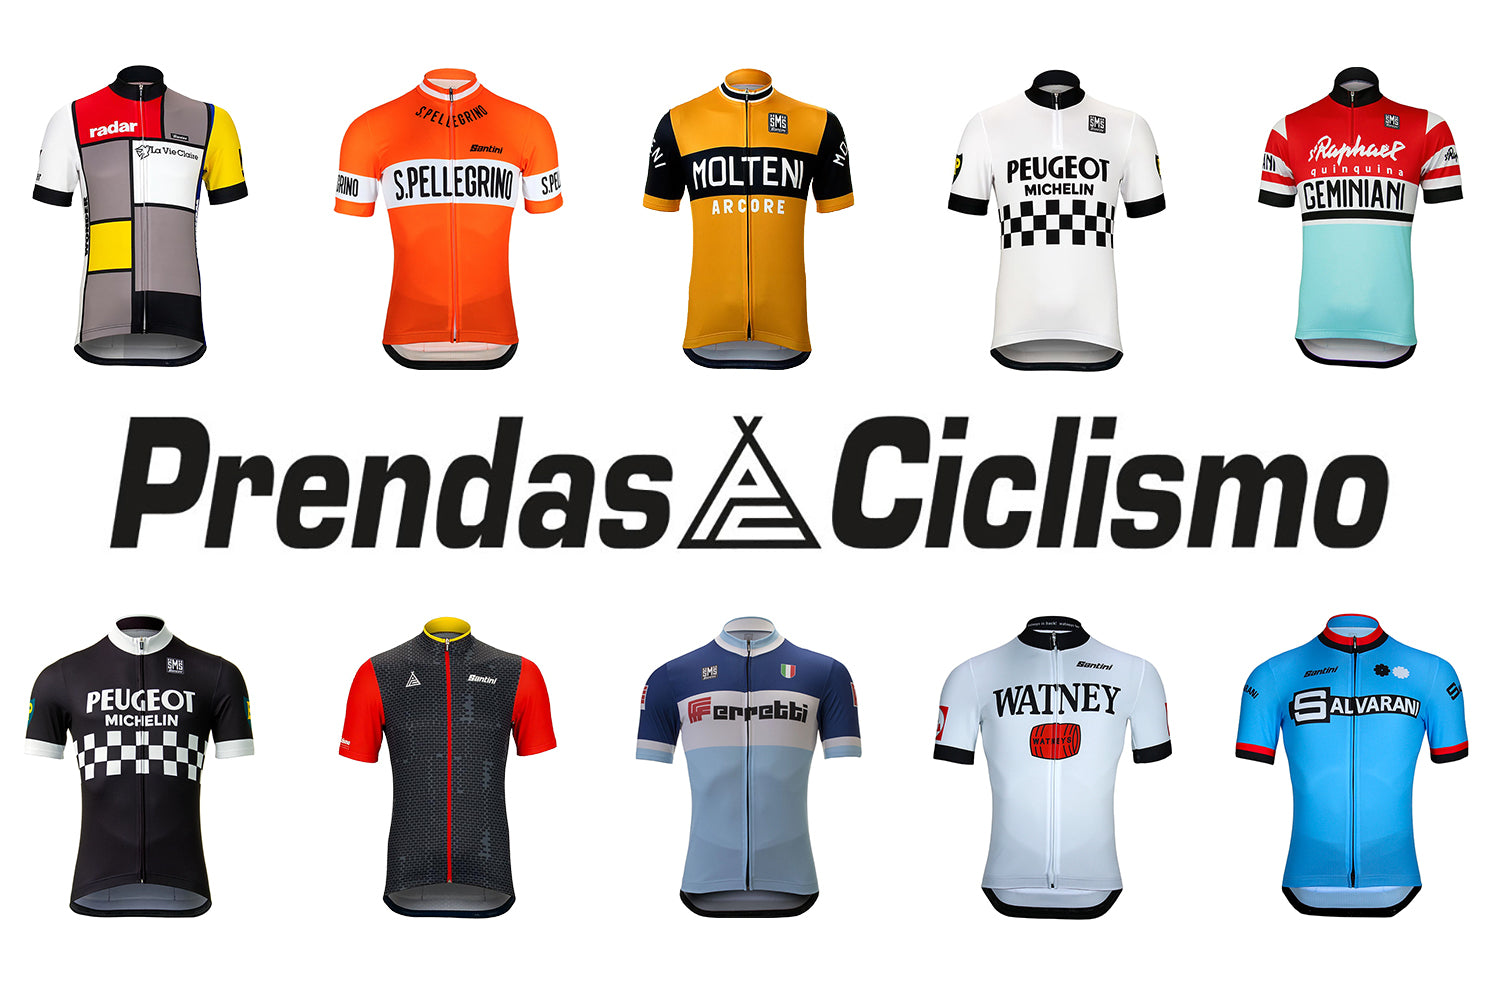 Our best-selling cycling jerseys of 2020